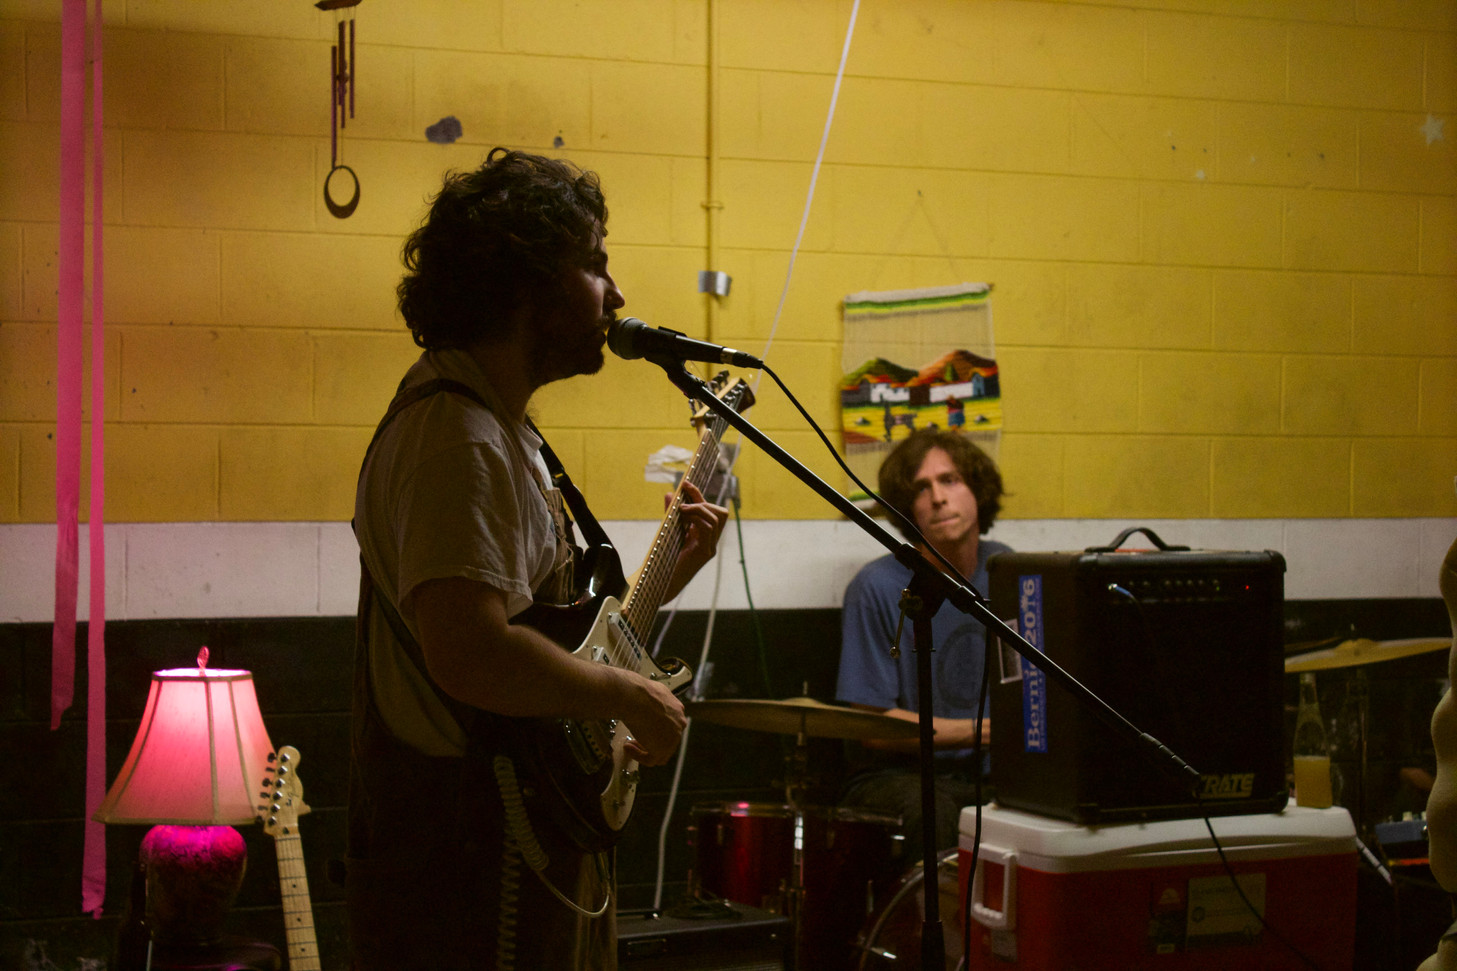 Cole Gorden and his band KrockPot play a few songs during a run through before the April 13 show.